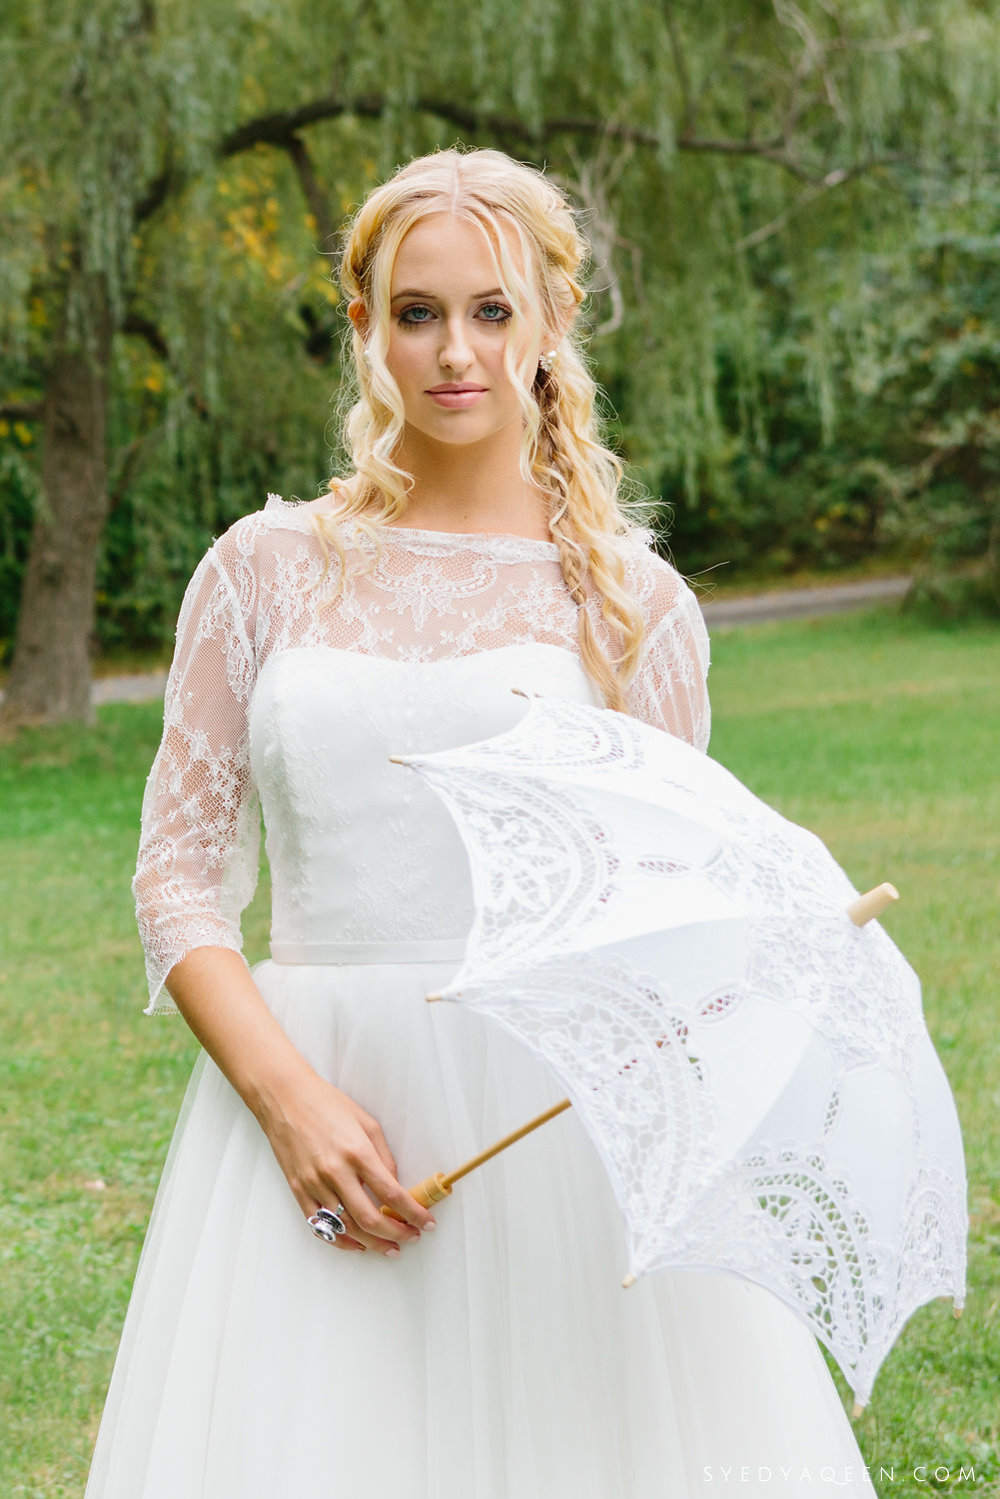 04 Alice in Wonderland Lace Parasol Watters Bridal Aribella Events.JPG